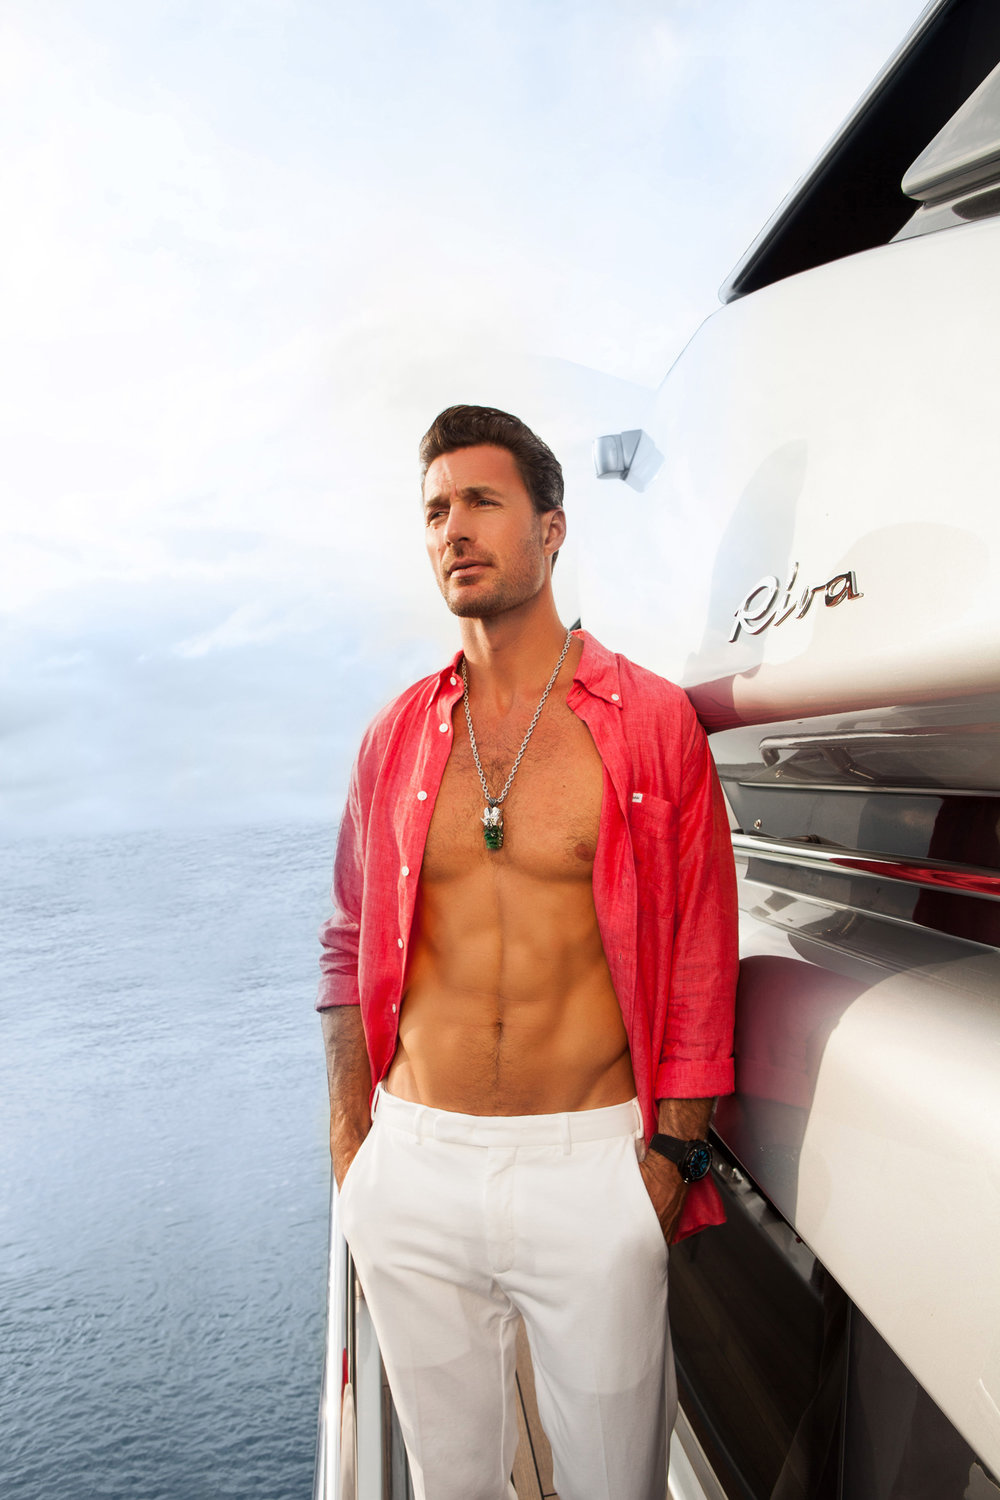 Man_on_yacht_portfolio-5448.jpg